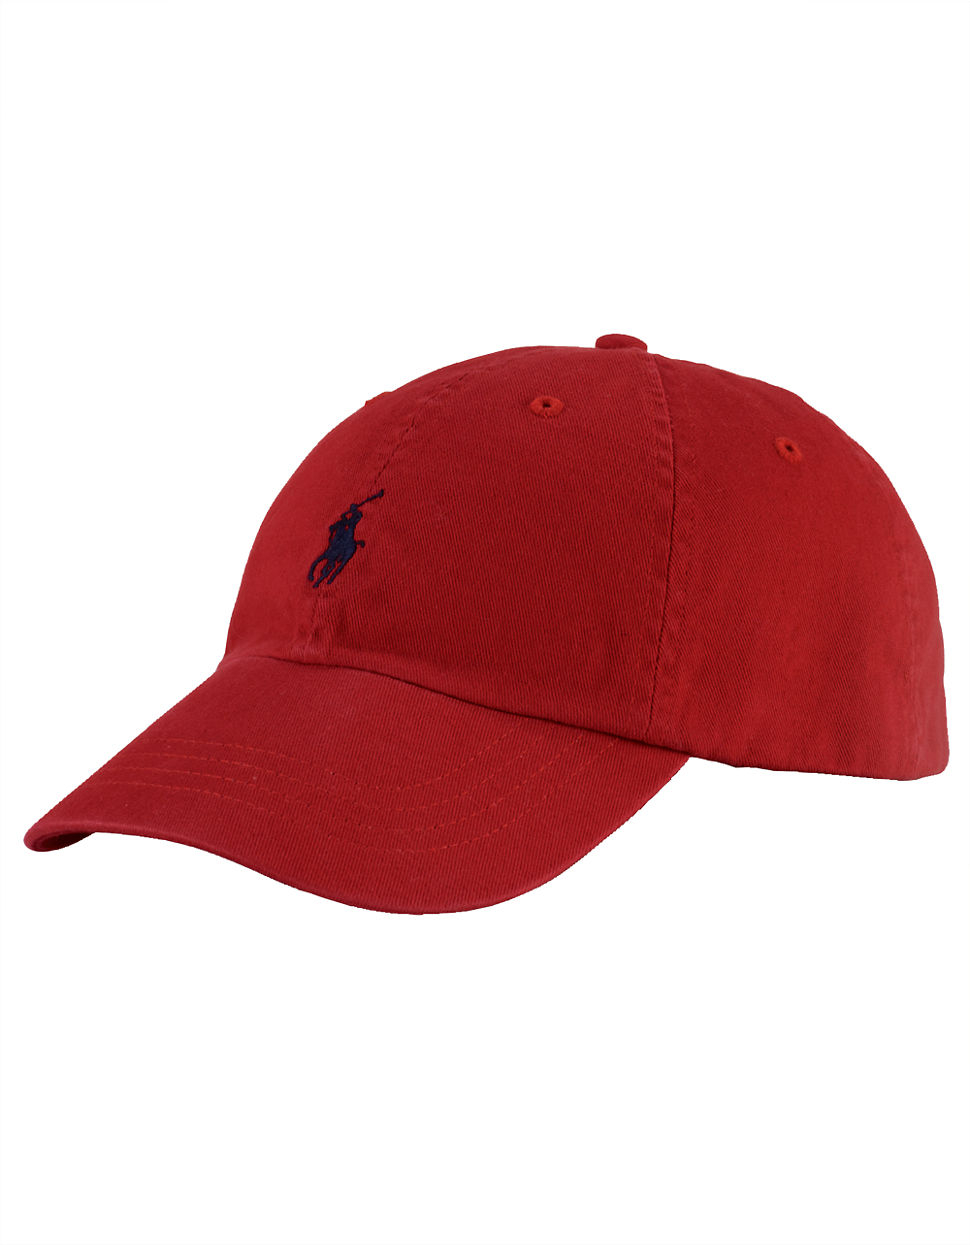 polo ralph lauren polo player hat in red rl red lyst. Black Bedroom Furniture Sets. Home Design Ideas